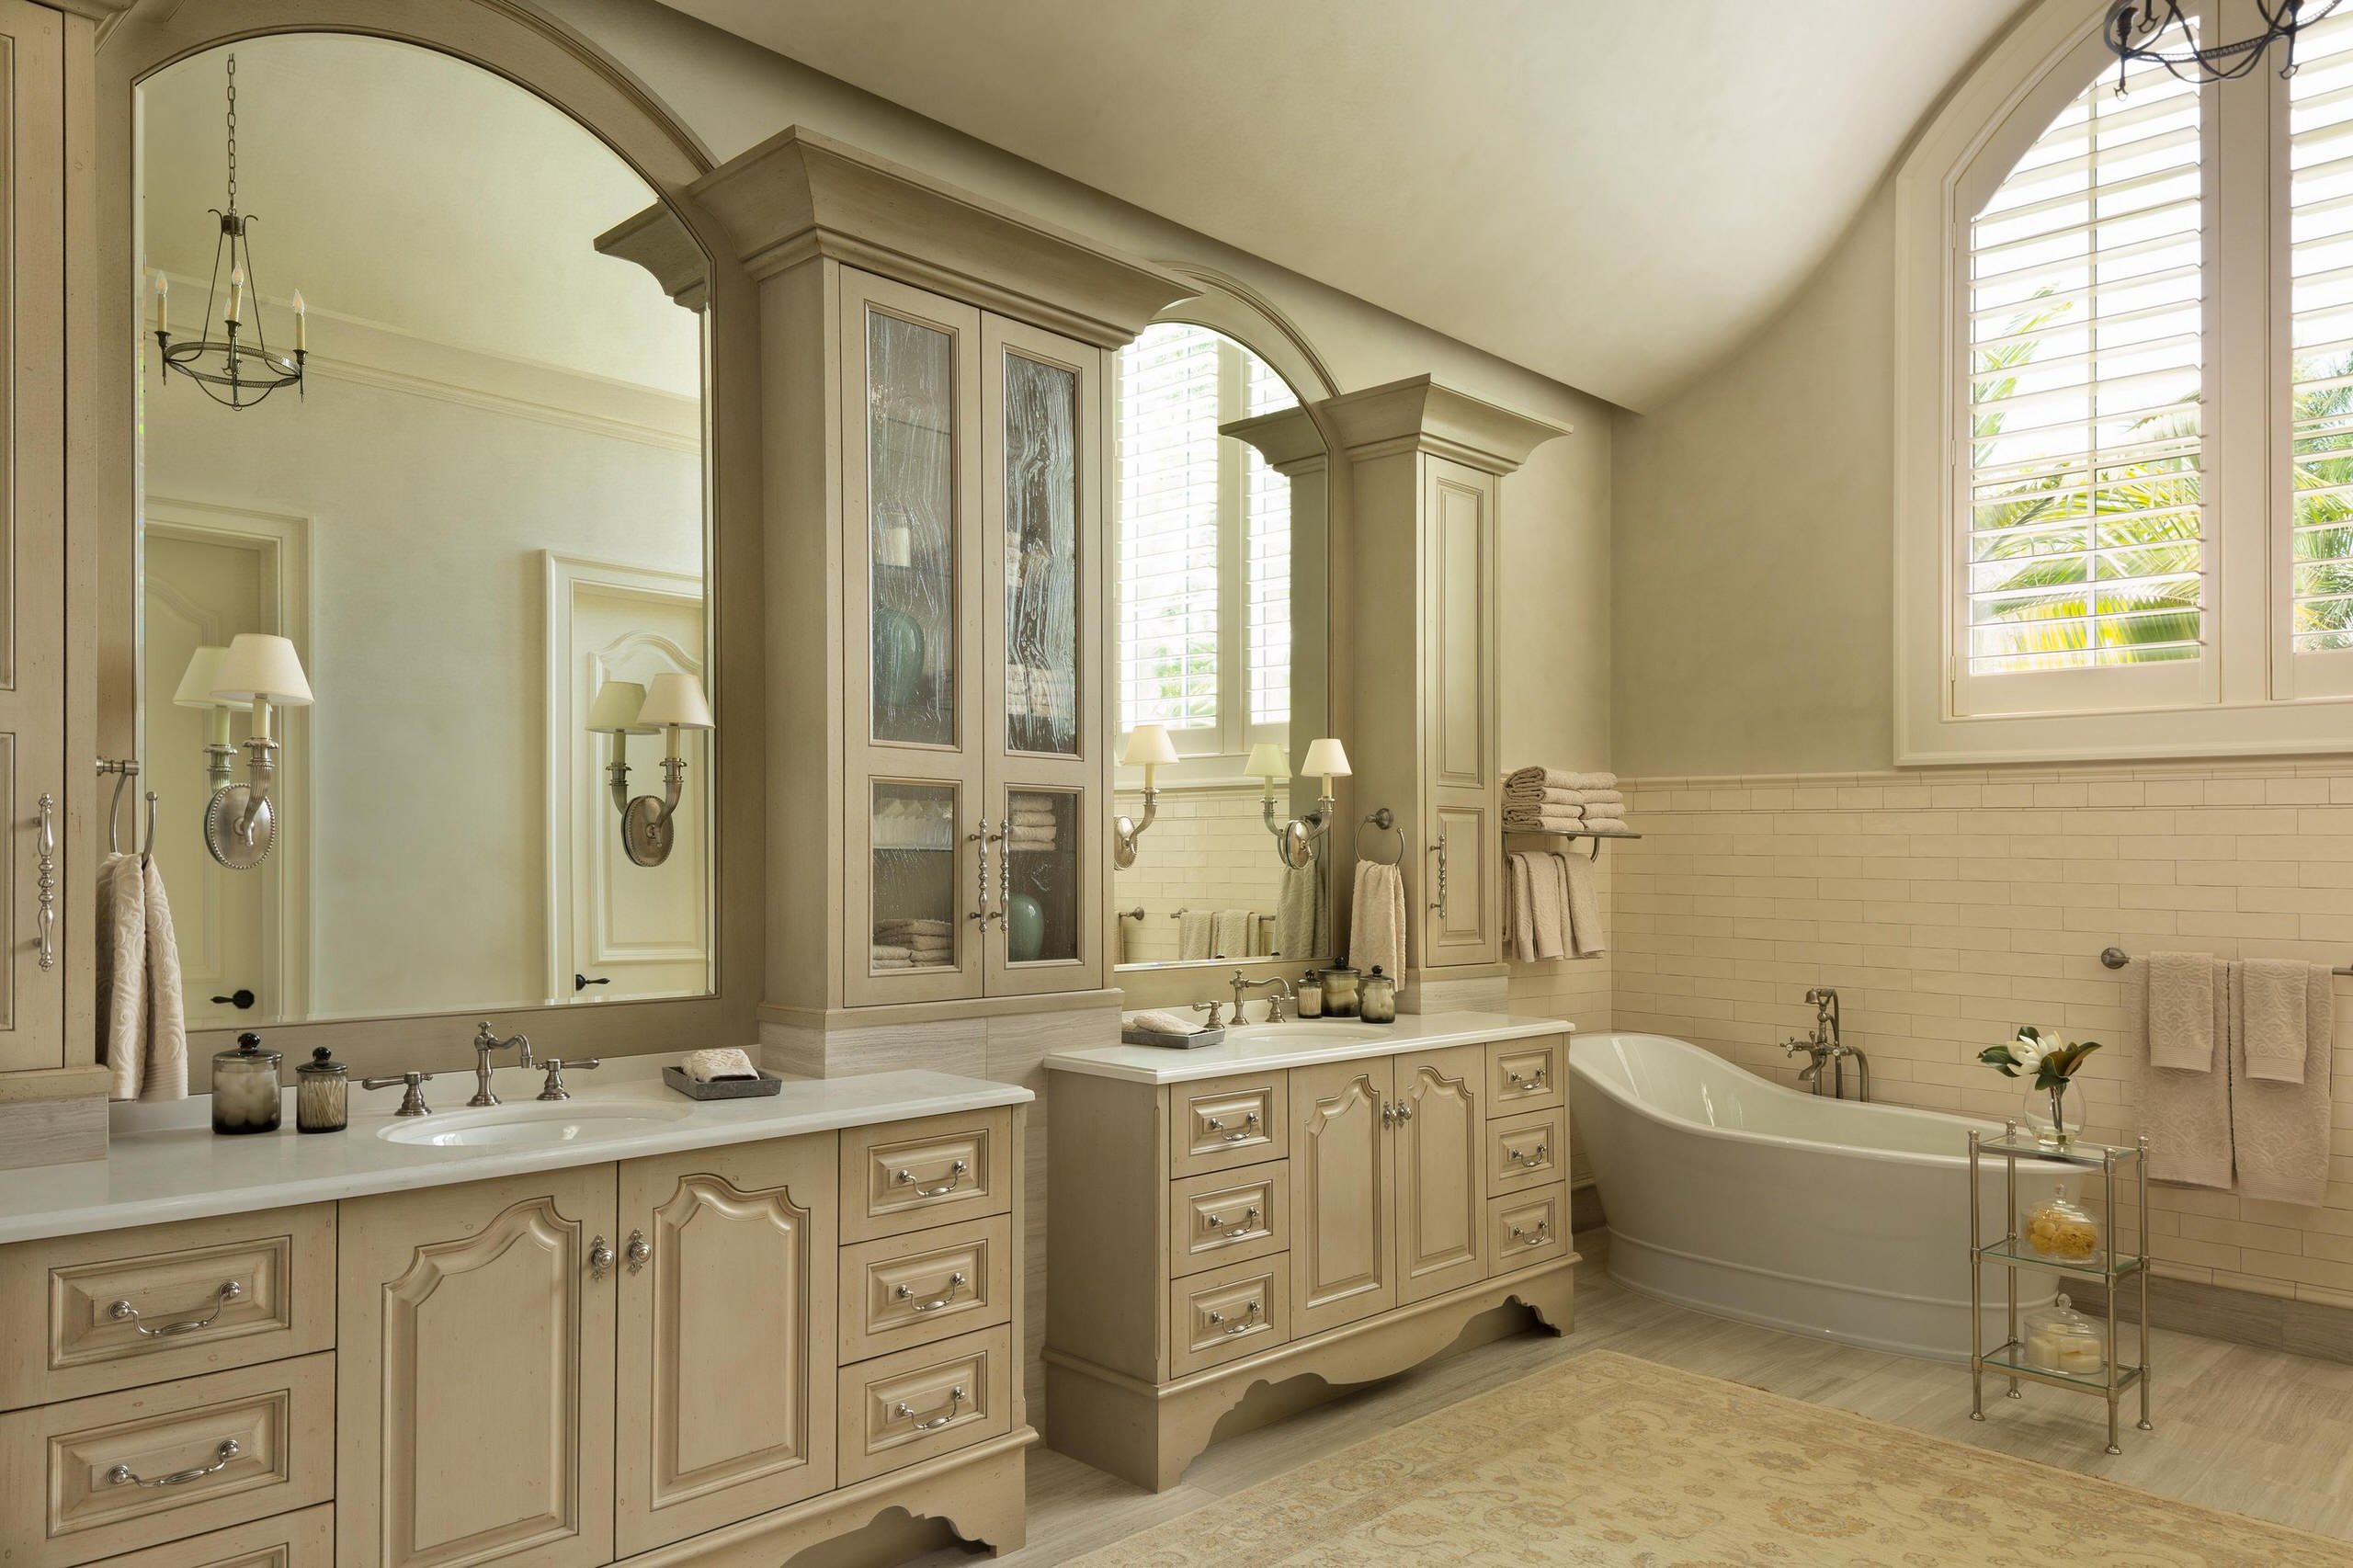 75 Beautiful French Country Bathroom Pictures Ideas May 2021 Houzz